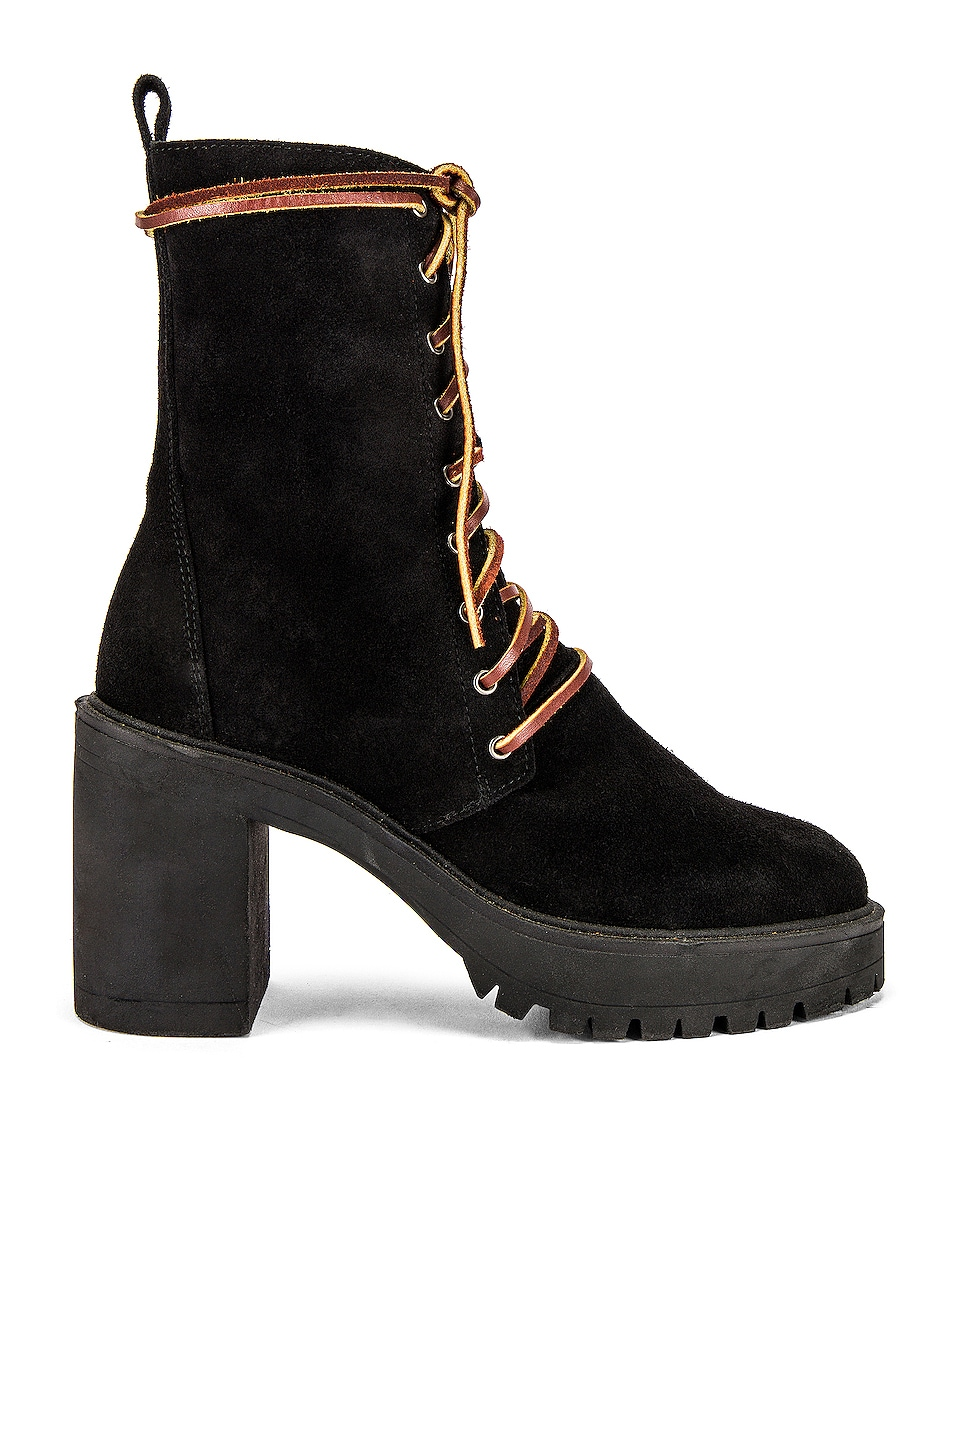 Free People Dylan Lace Up Boot in Black